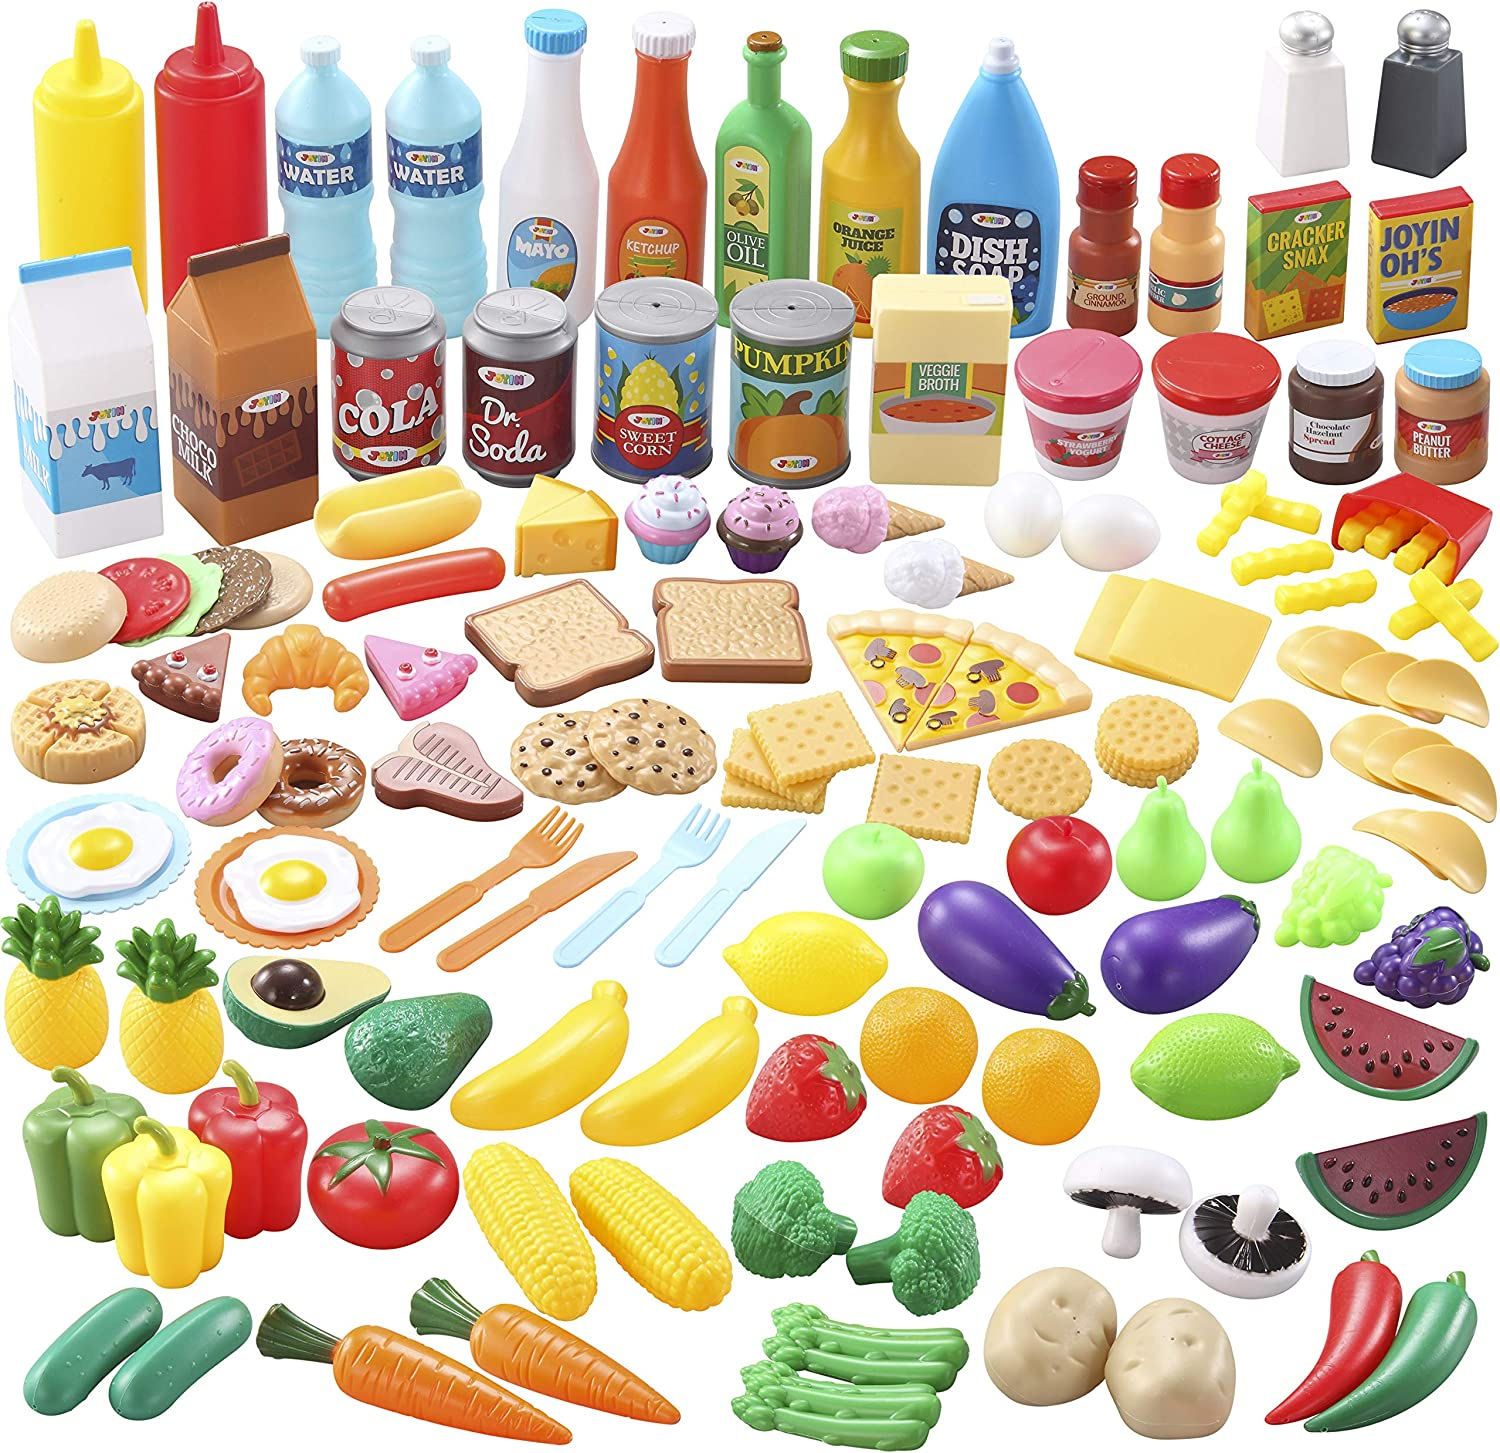 JOYIN 135 PCS Pretend Kitchen Play Food Toy with Fruit, Vegetable, Tableware, Bottle - Kids Education Kitchen Toy for Toddler Boys and Girls